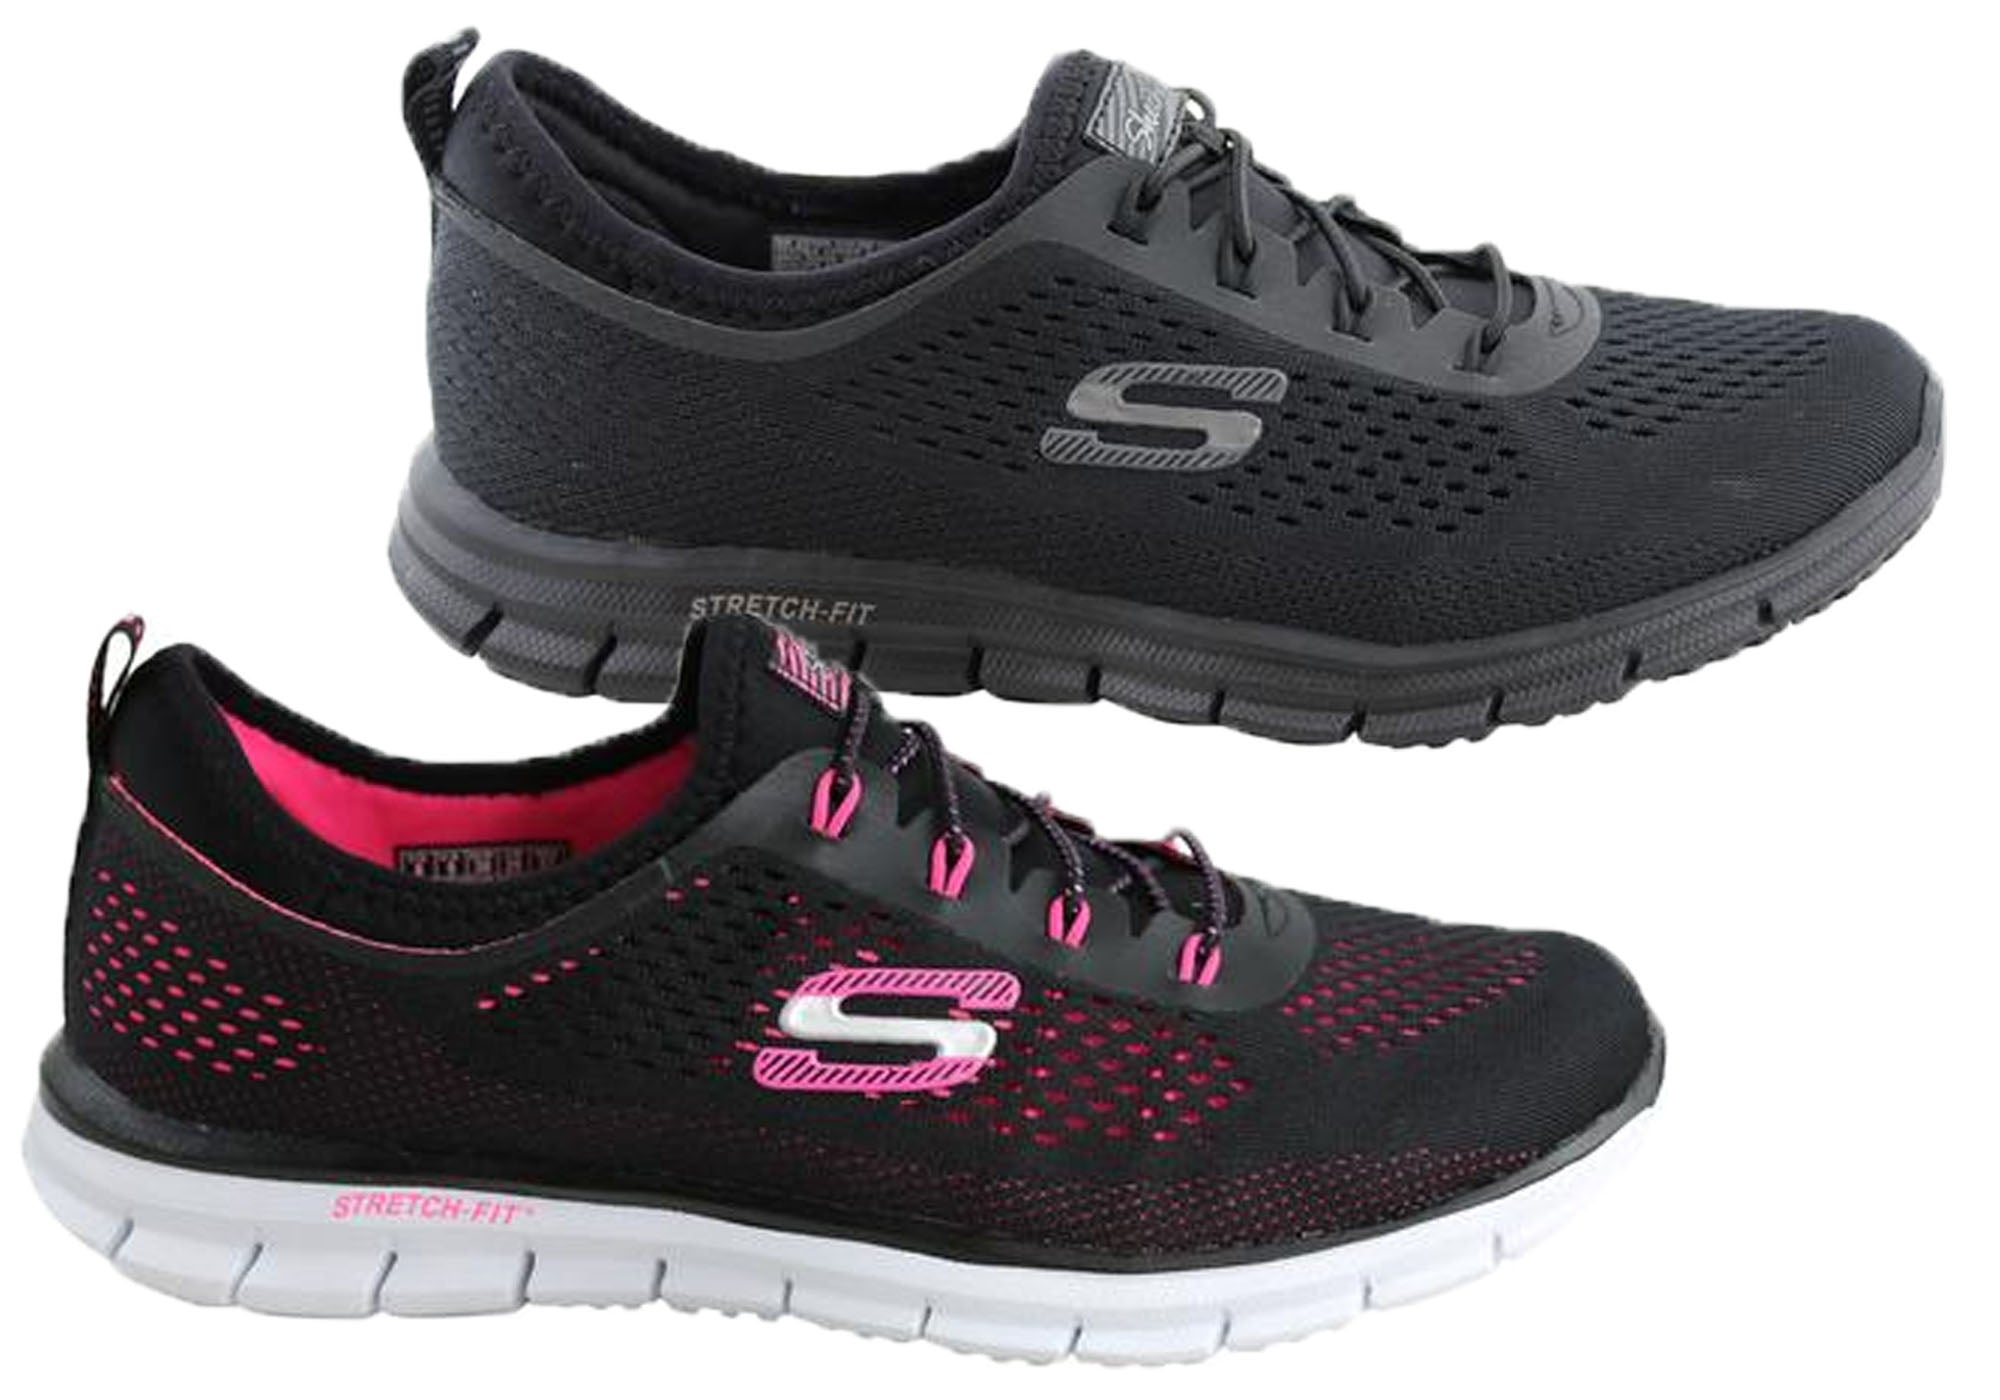 new product 23ba0 bd1a9 Details about Skechers Glider Harmony Womens Memory Foam Sneakers -  ShopShoesAU